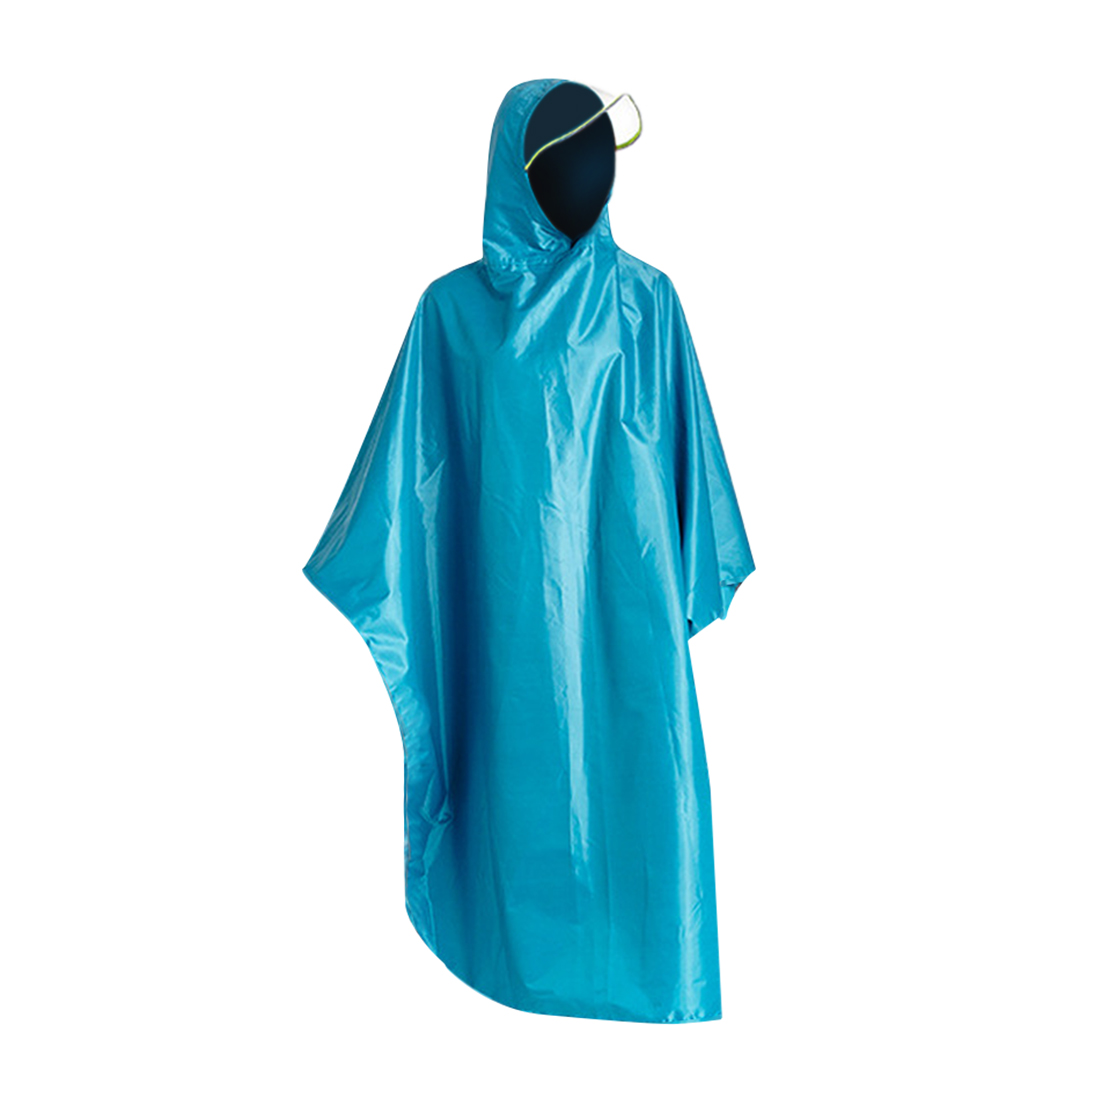 Sky Bule Adult Poncho Cycling Raincoat Bicycle Hooded Waterproof Rain Coat Cover